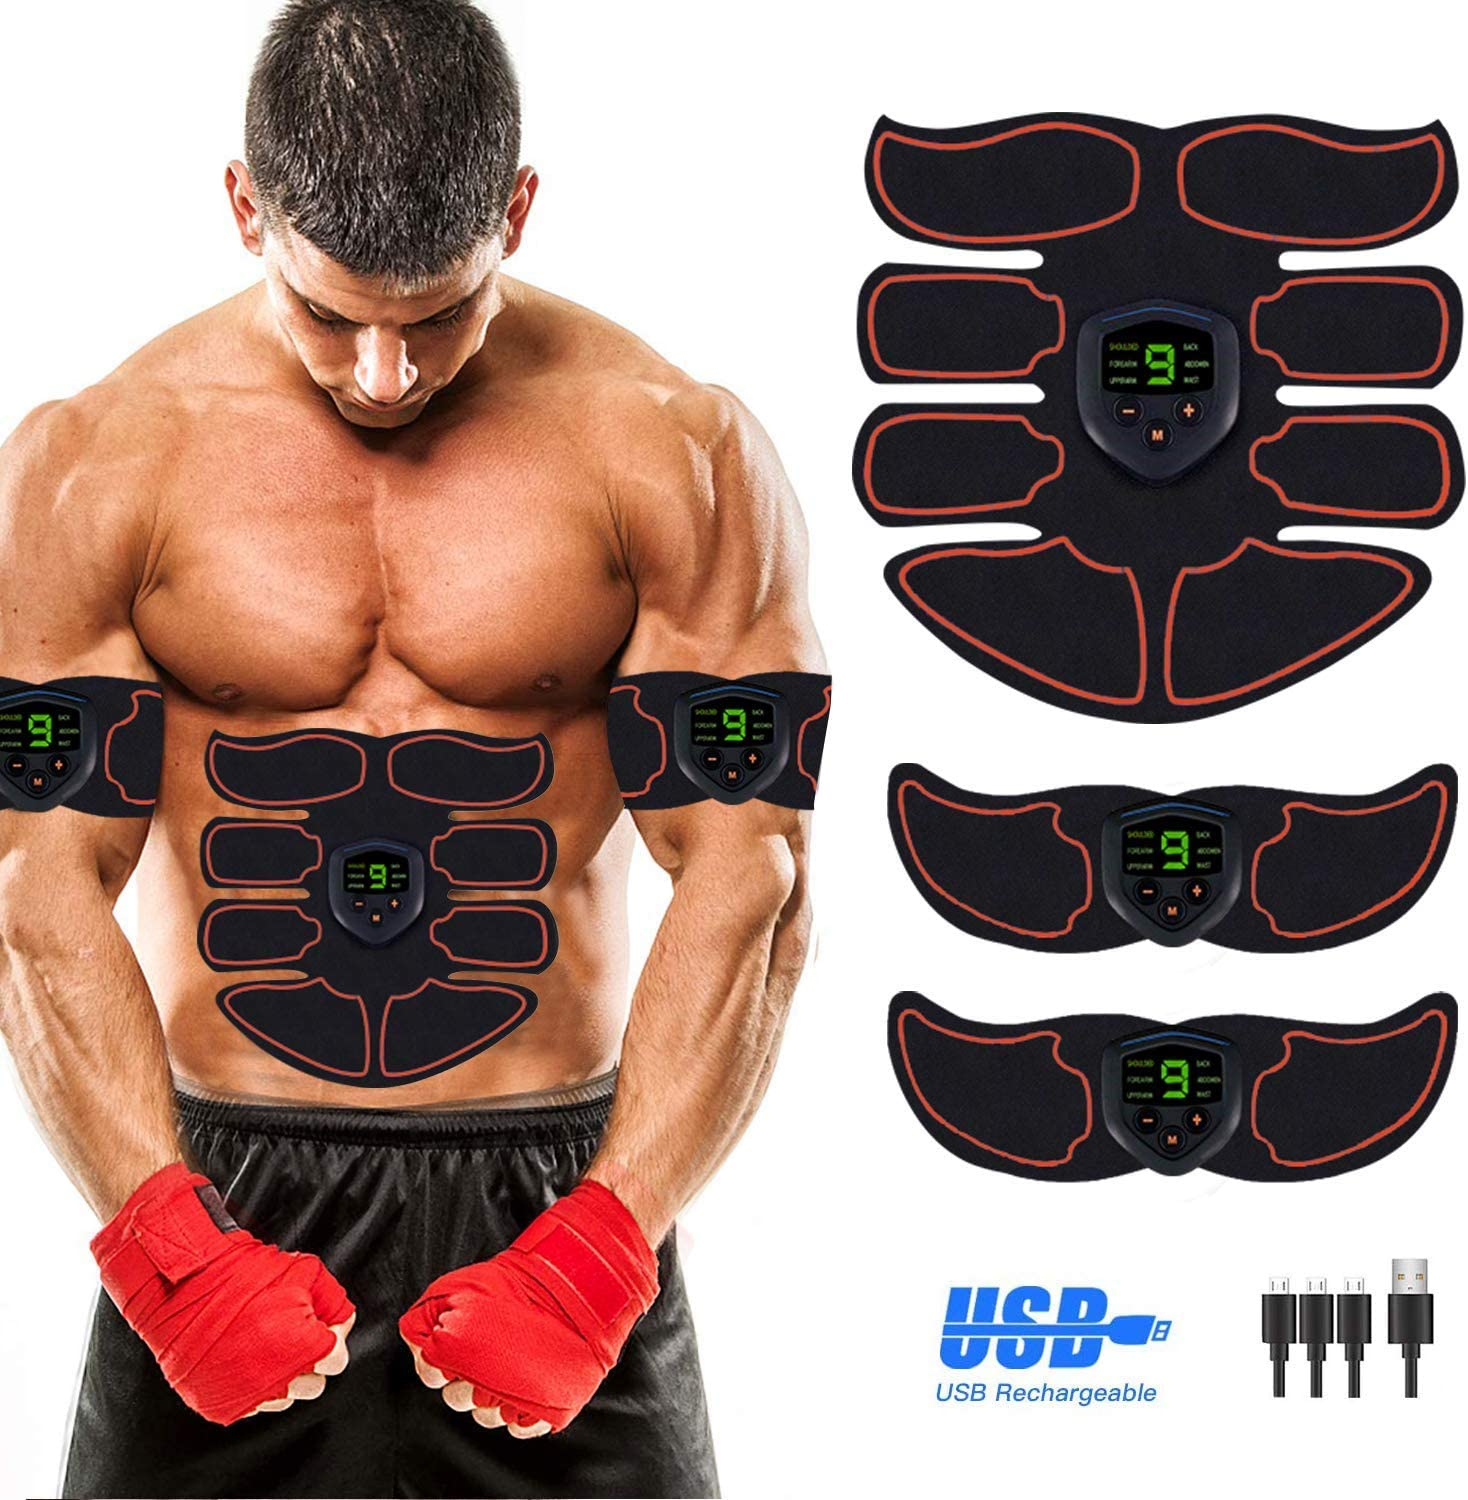 Abs Stimulator Abdominal Muscle, EMS ABS Trainer Body Toning Fitness, USB Rechargeable Toning Belt ABS Fit Weight Muscle Toner Workout Machine for Men & Women